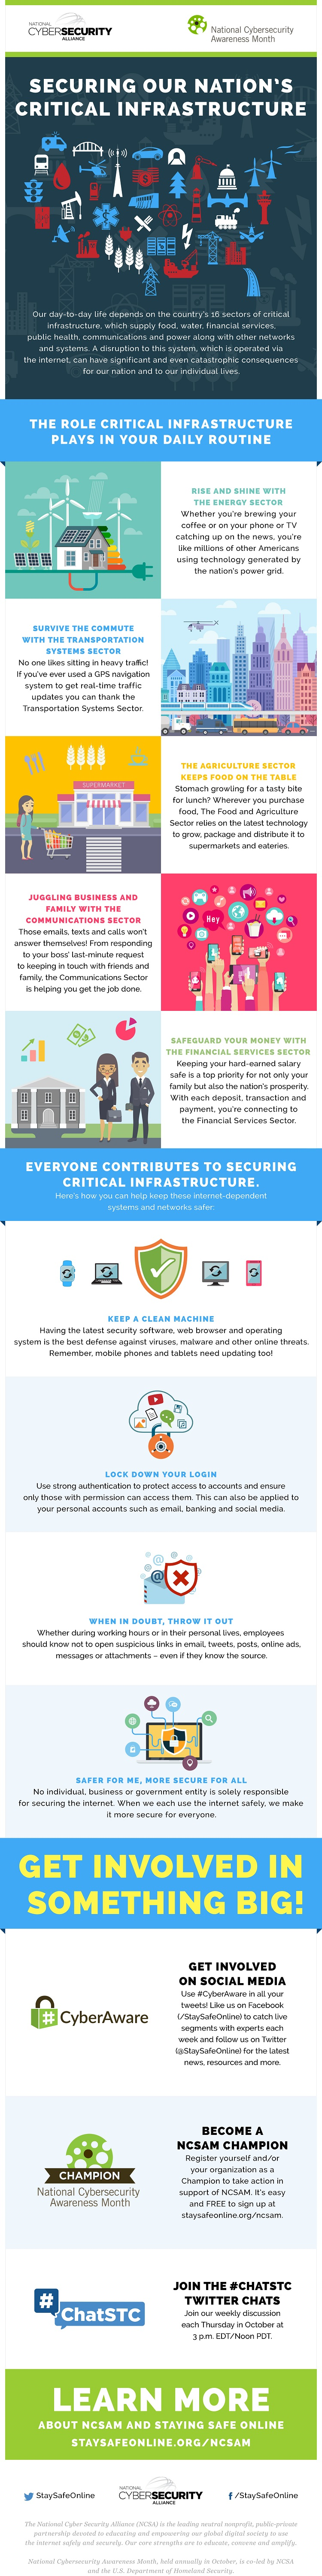 Securing Our Nation's Critial Infrastructure Infographic.